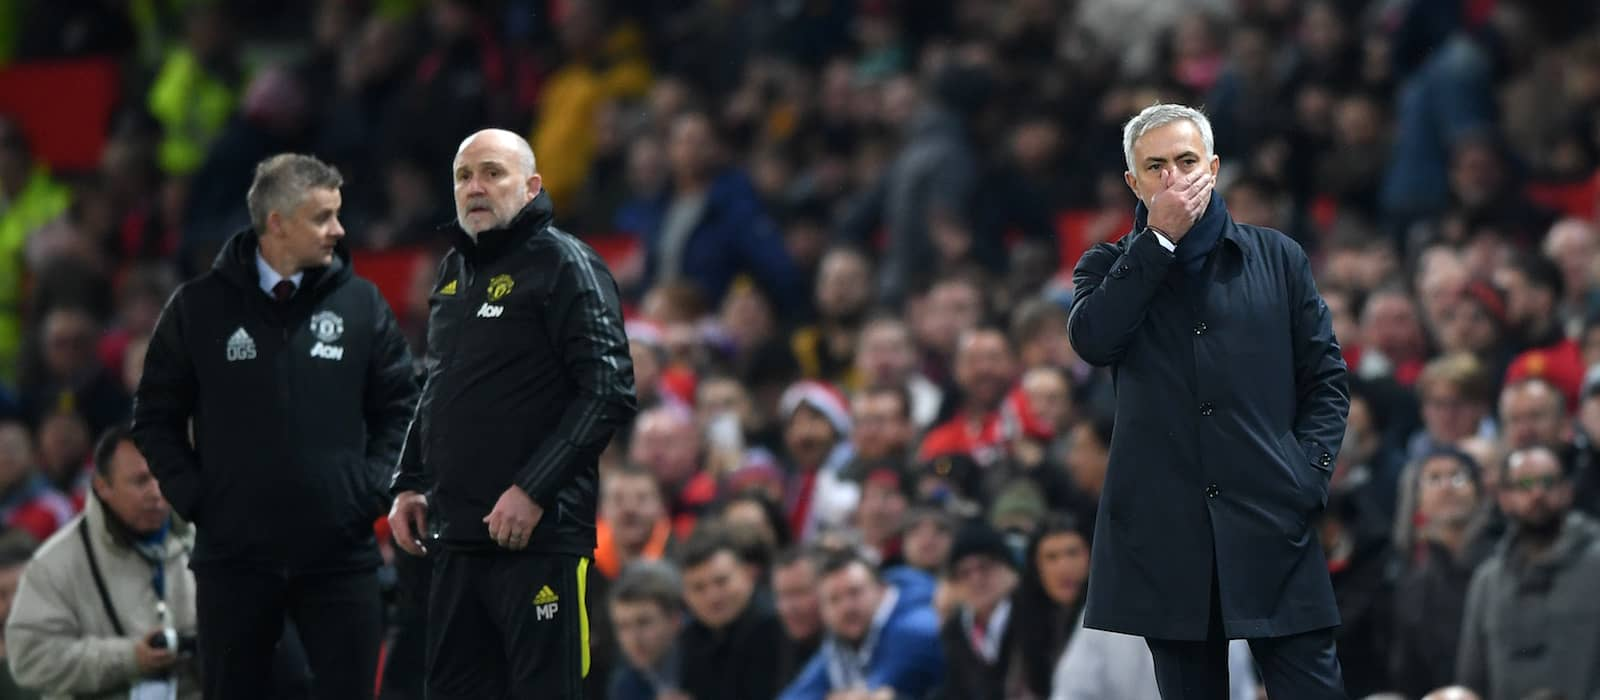 Jose Mourinho rattled by Ole Gunnar Solskjaer's comments